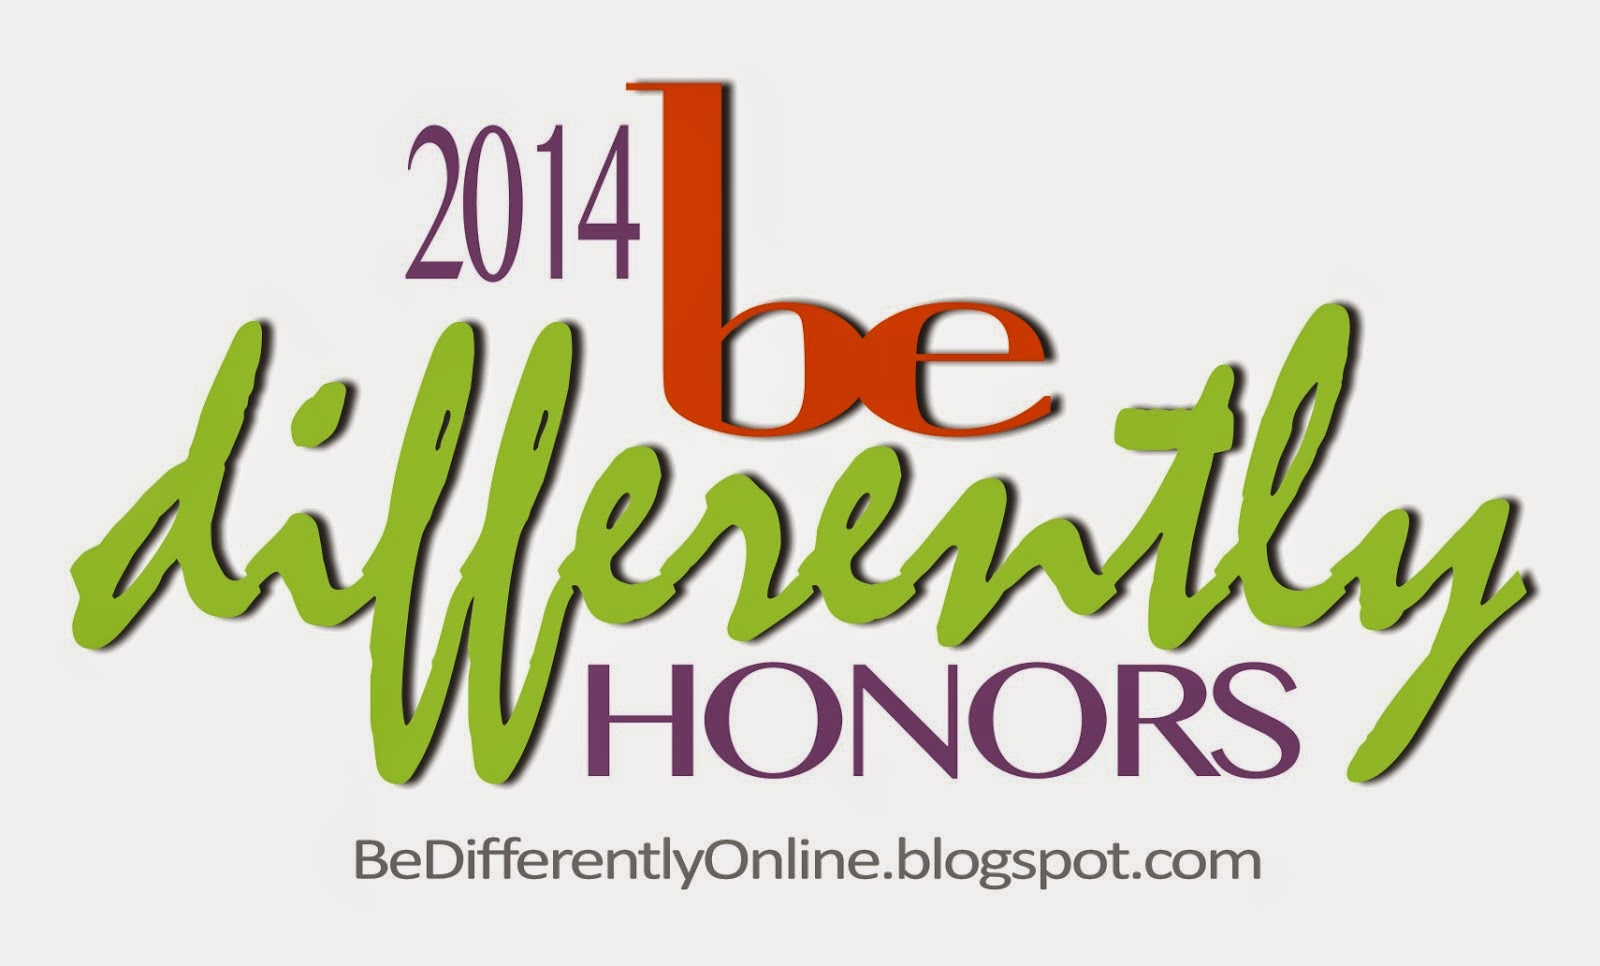 WHO WILL BE HONORED THIS YEAR?